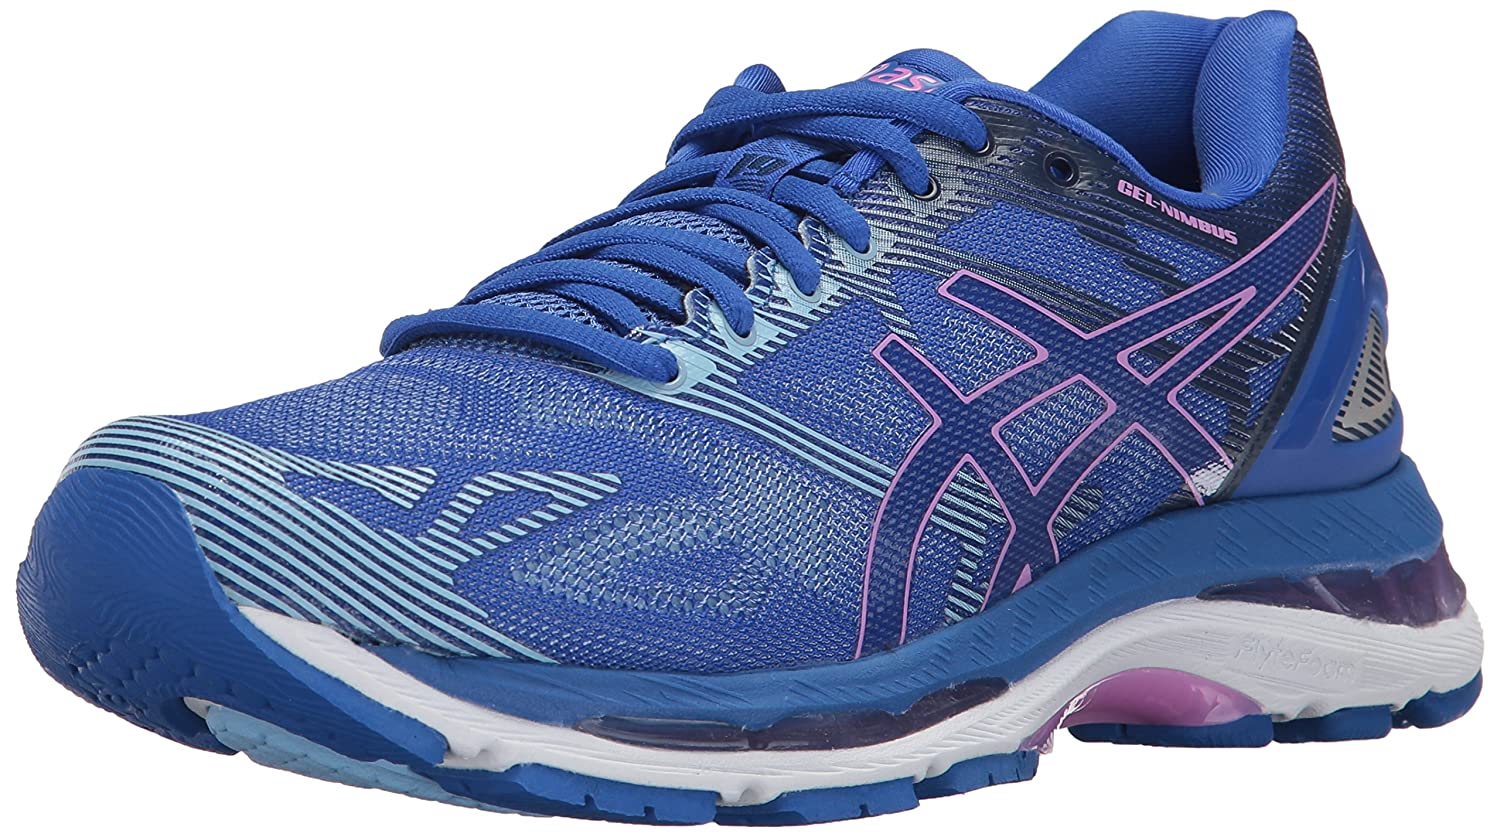 ASICS Women's Gel-Nimbus 19 Running Shoe B01N8OX0ZO 9.5 B(M) US|Blue Purple/Violet/Airy Blue